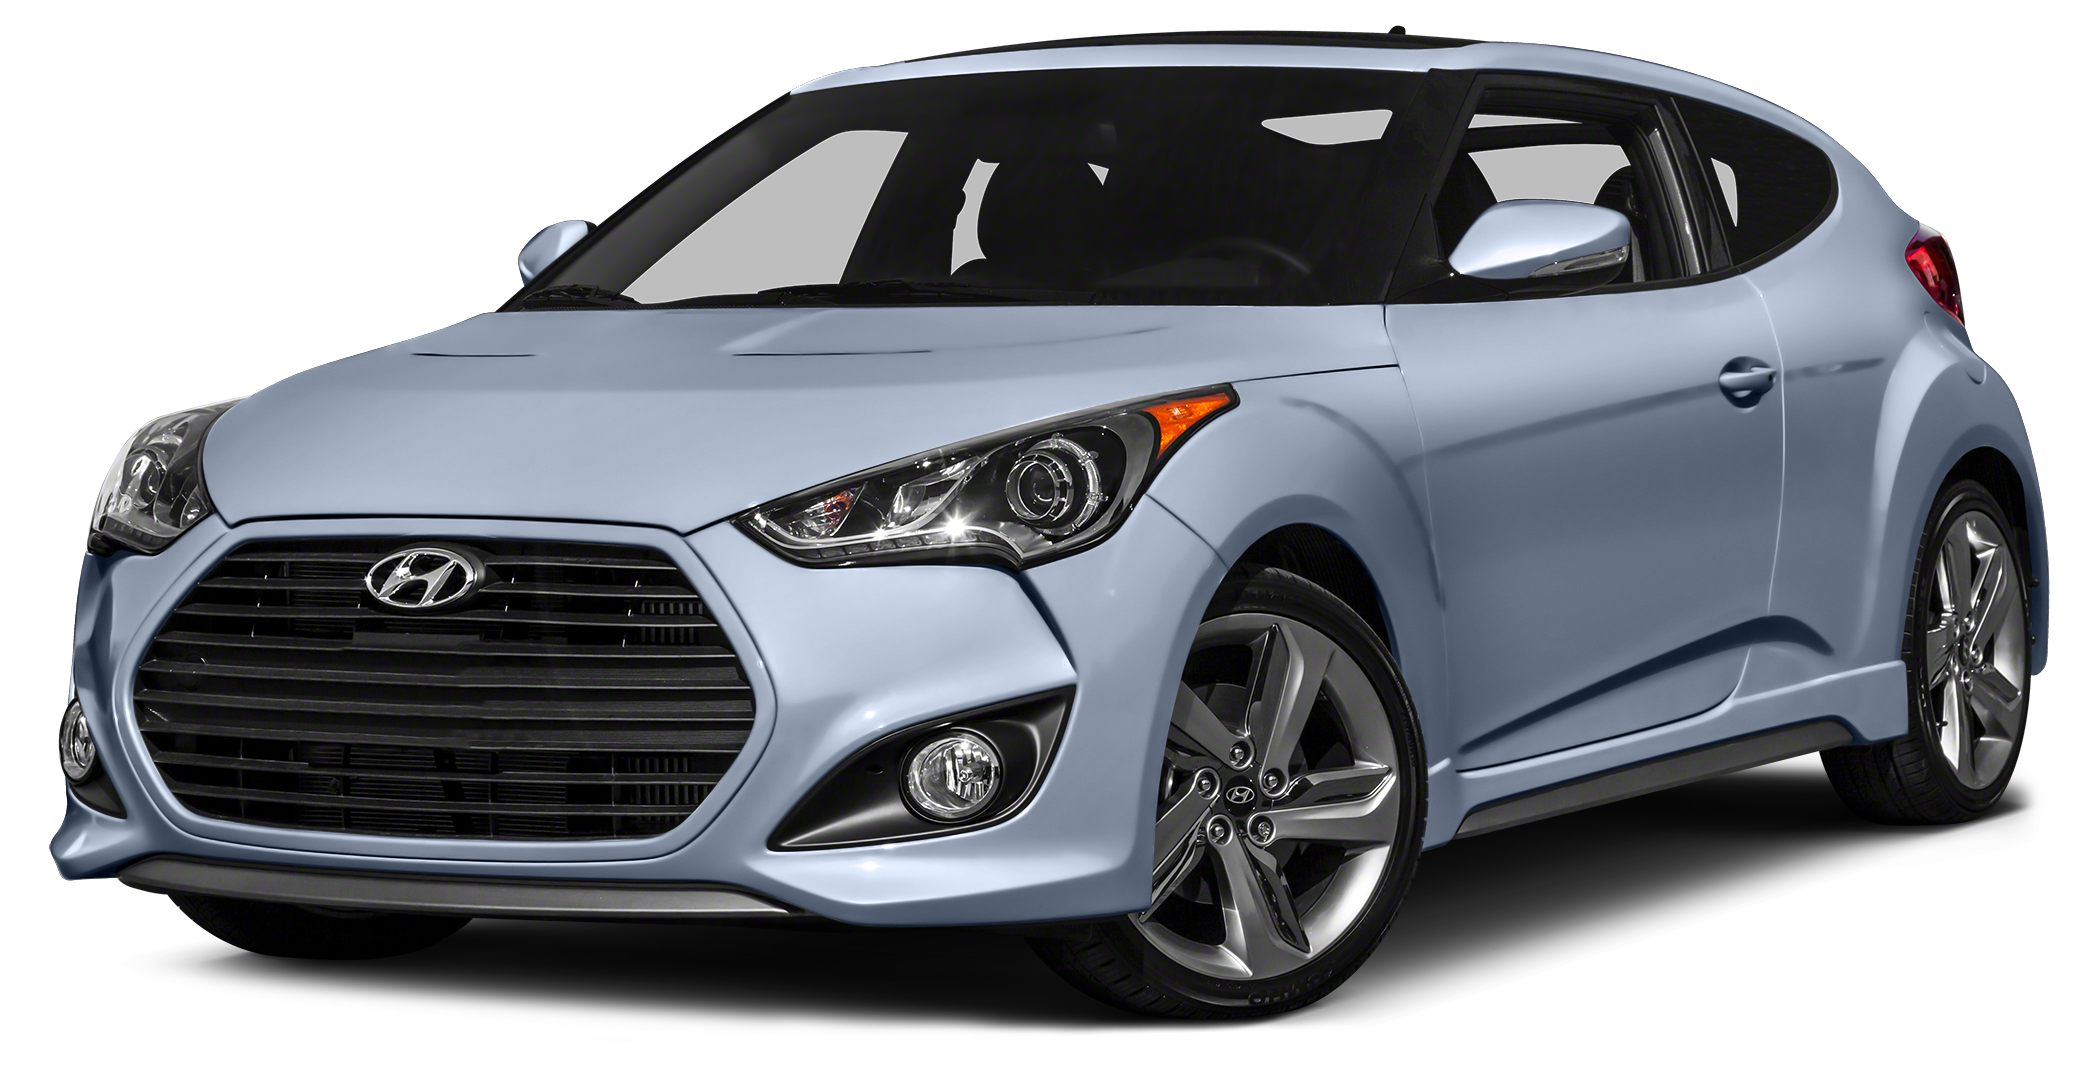 2015 Hyundai Veloster Turbo Home of the 20yr200k mile warranty Miles 3Color Ironman Silver Sto